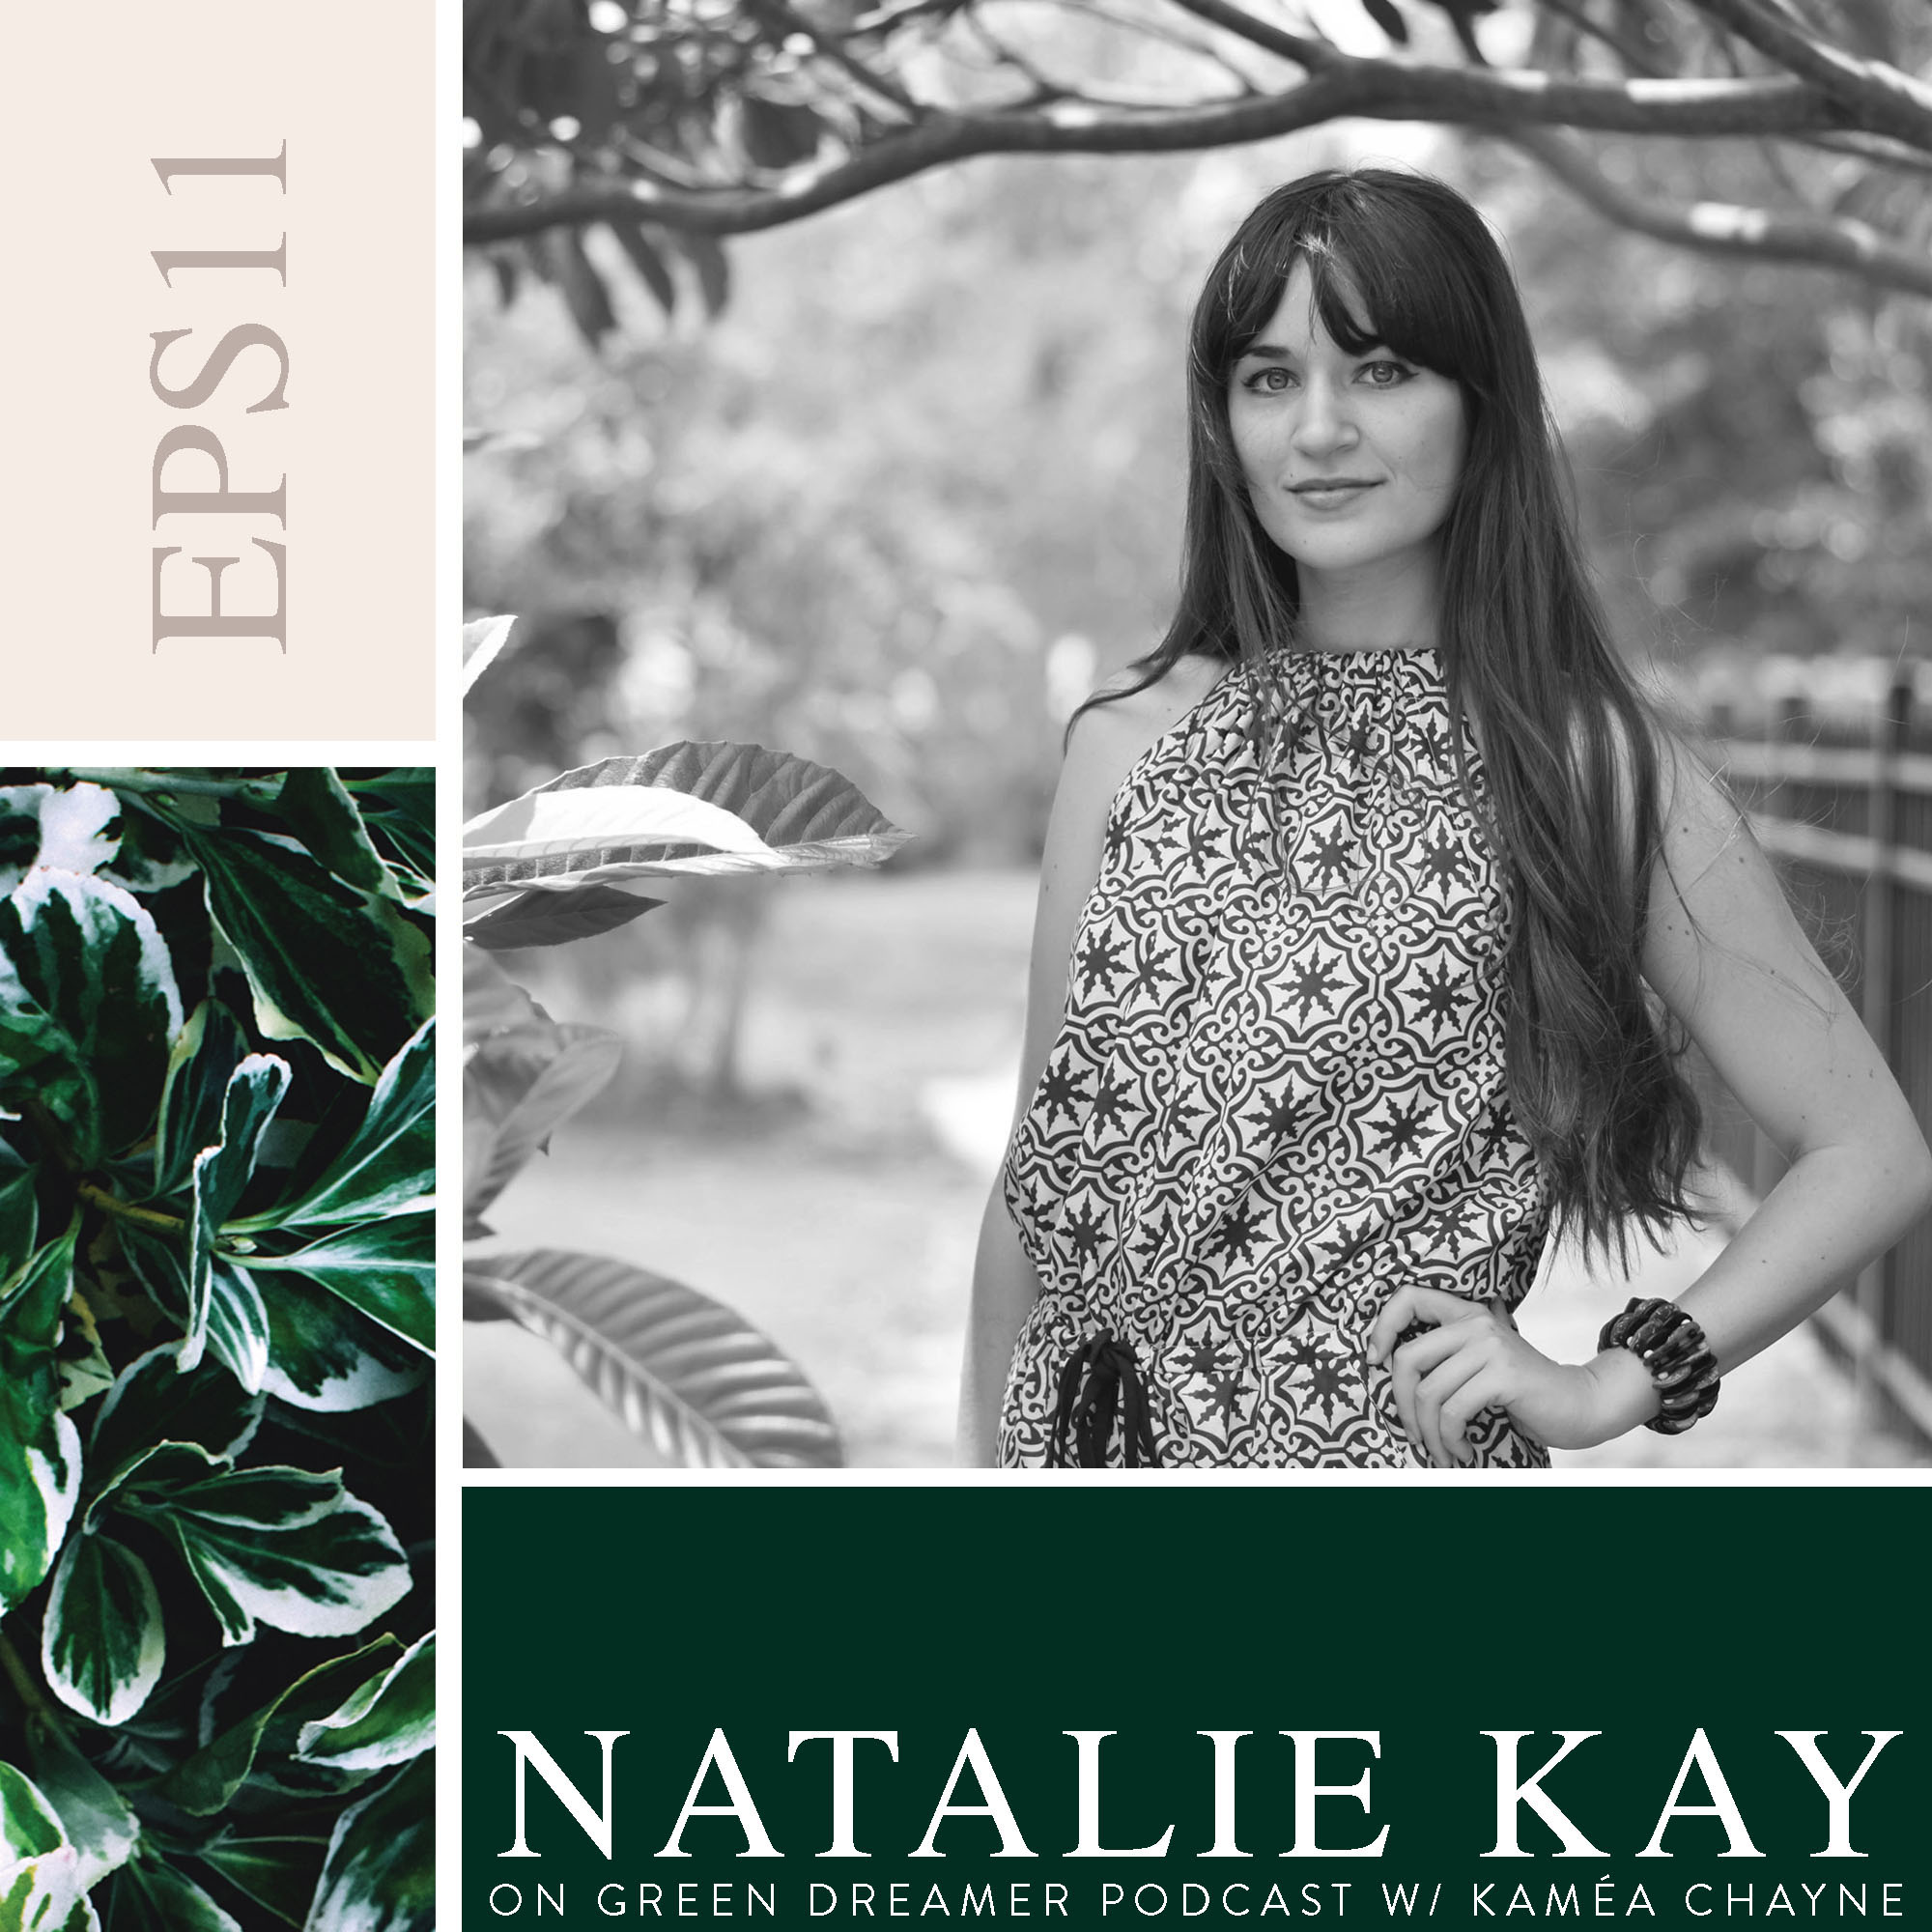 Natalie Kay on Sustainability via Green Dreamer Podcast with Kaméa Chayne